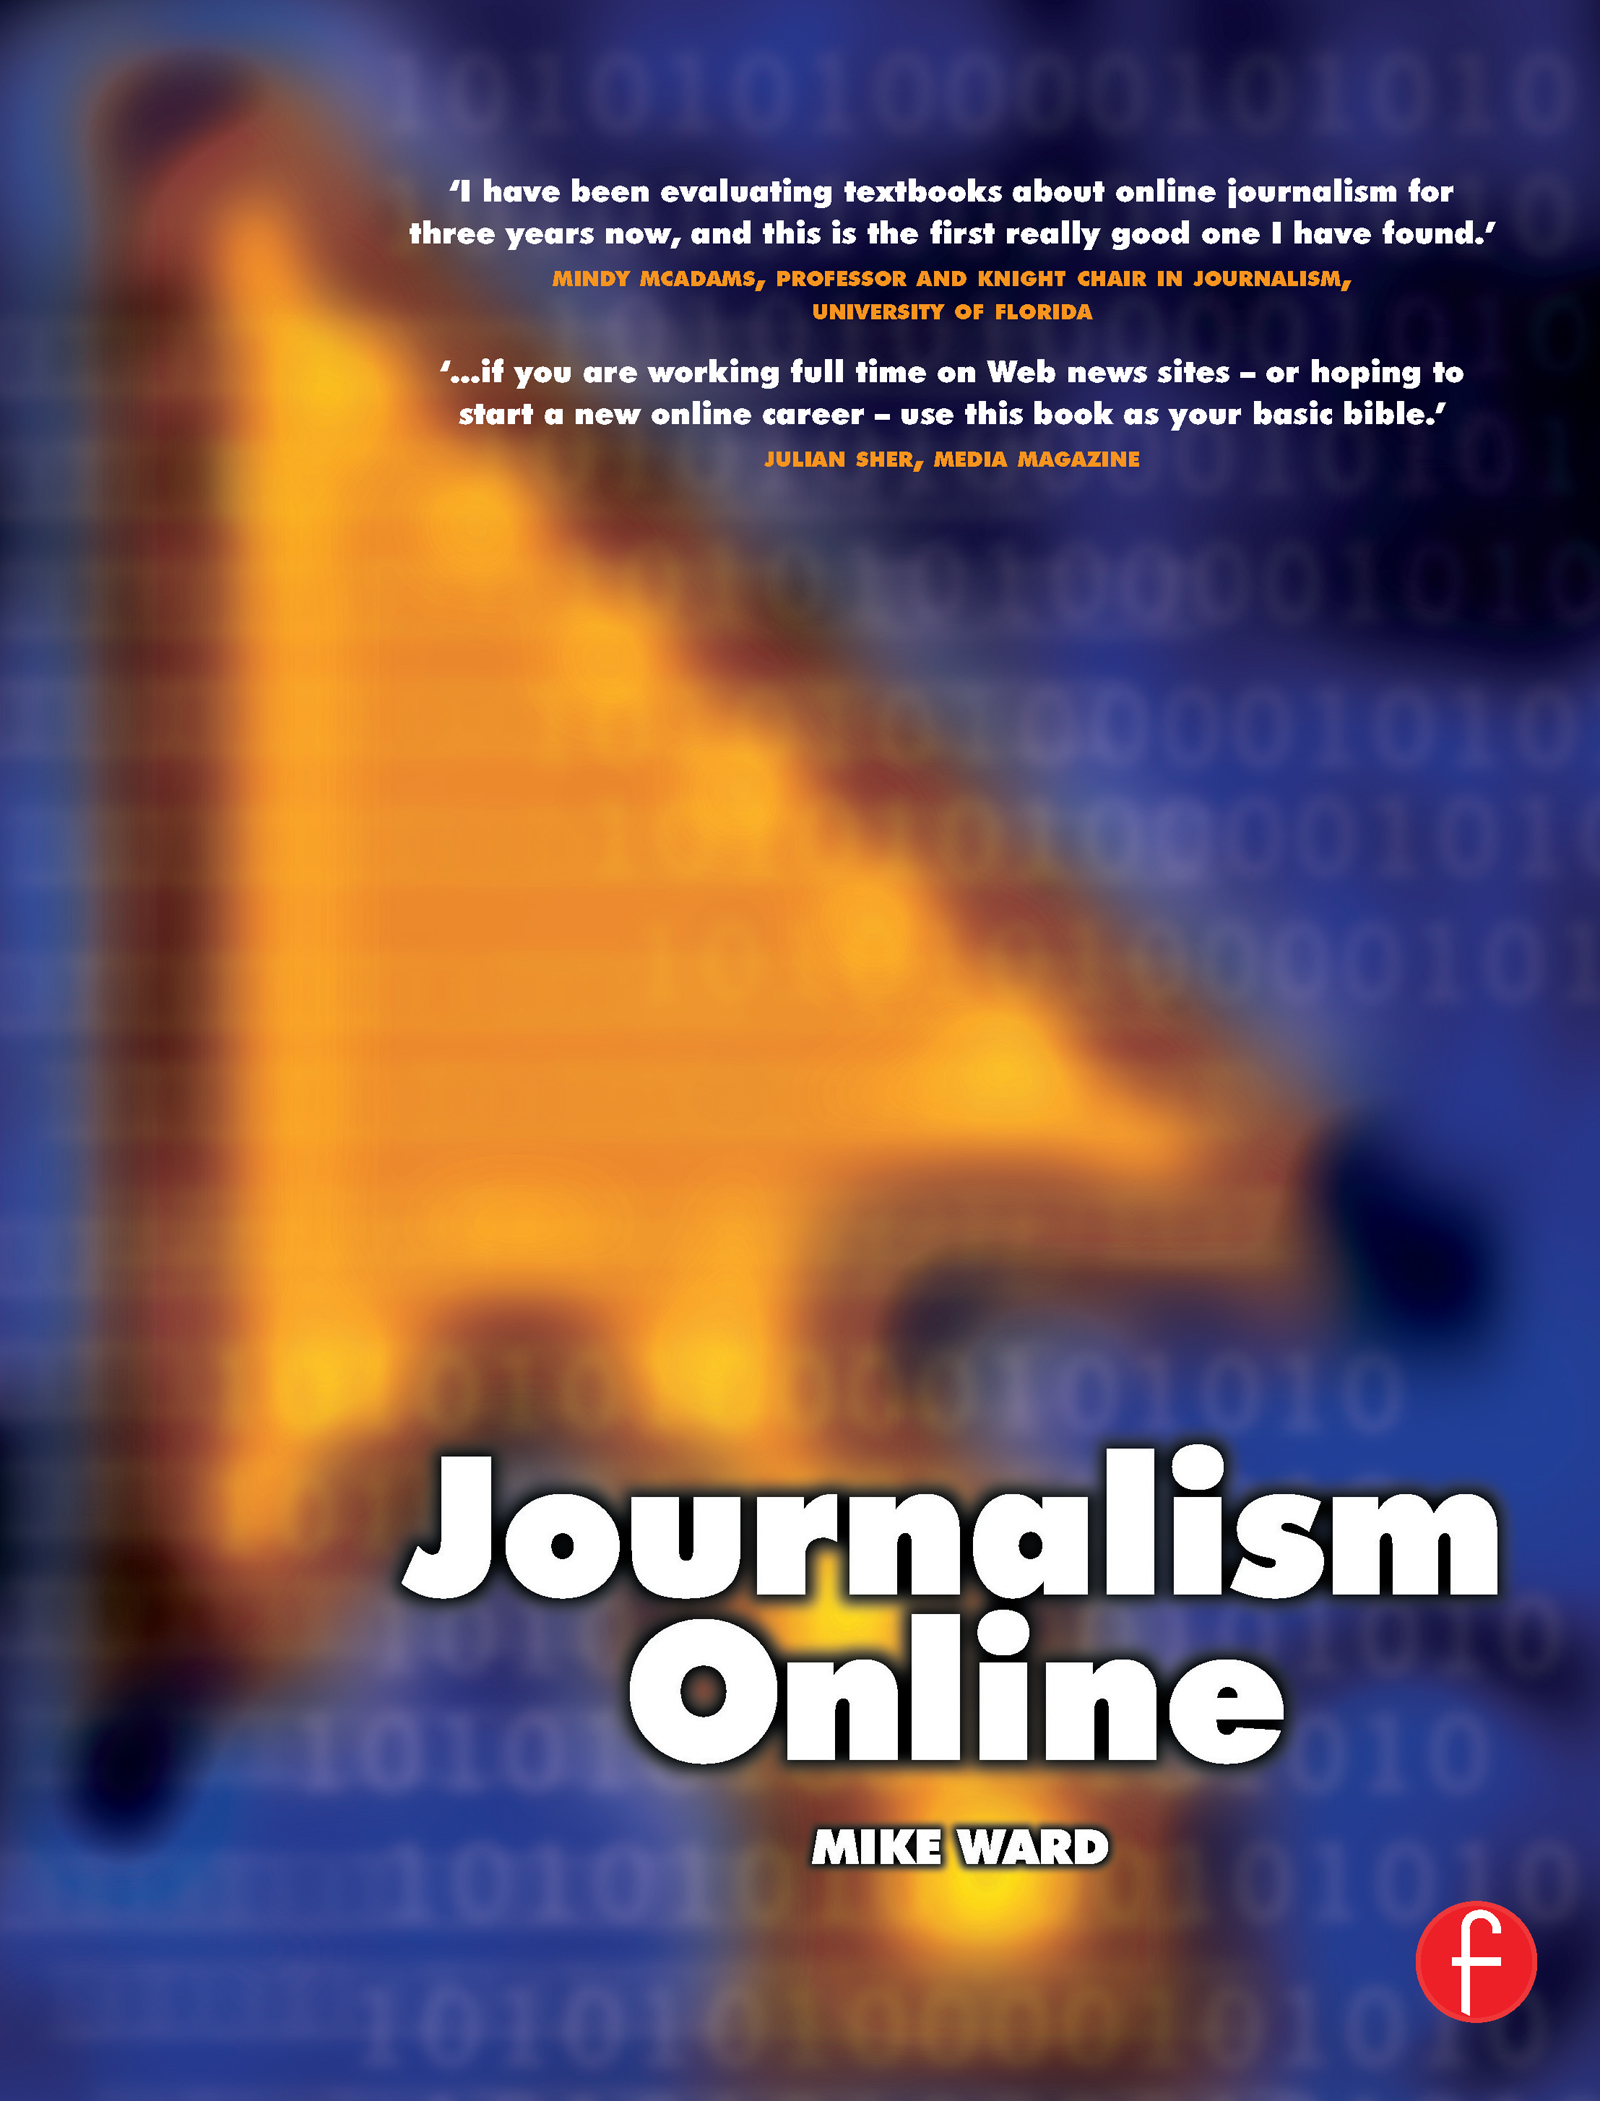 Download Ebook Journalism Online by Mike Ward Pdf